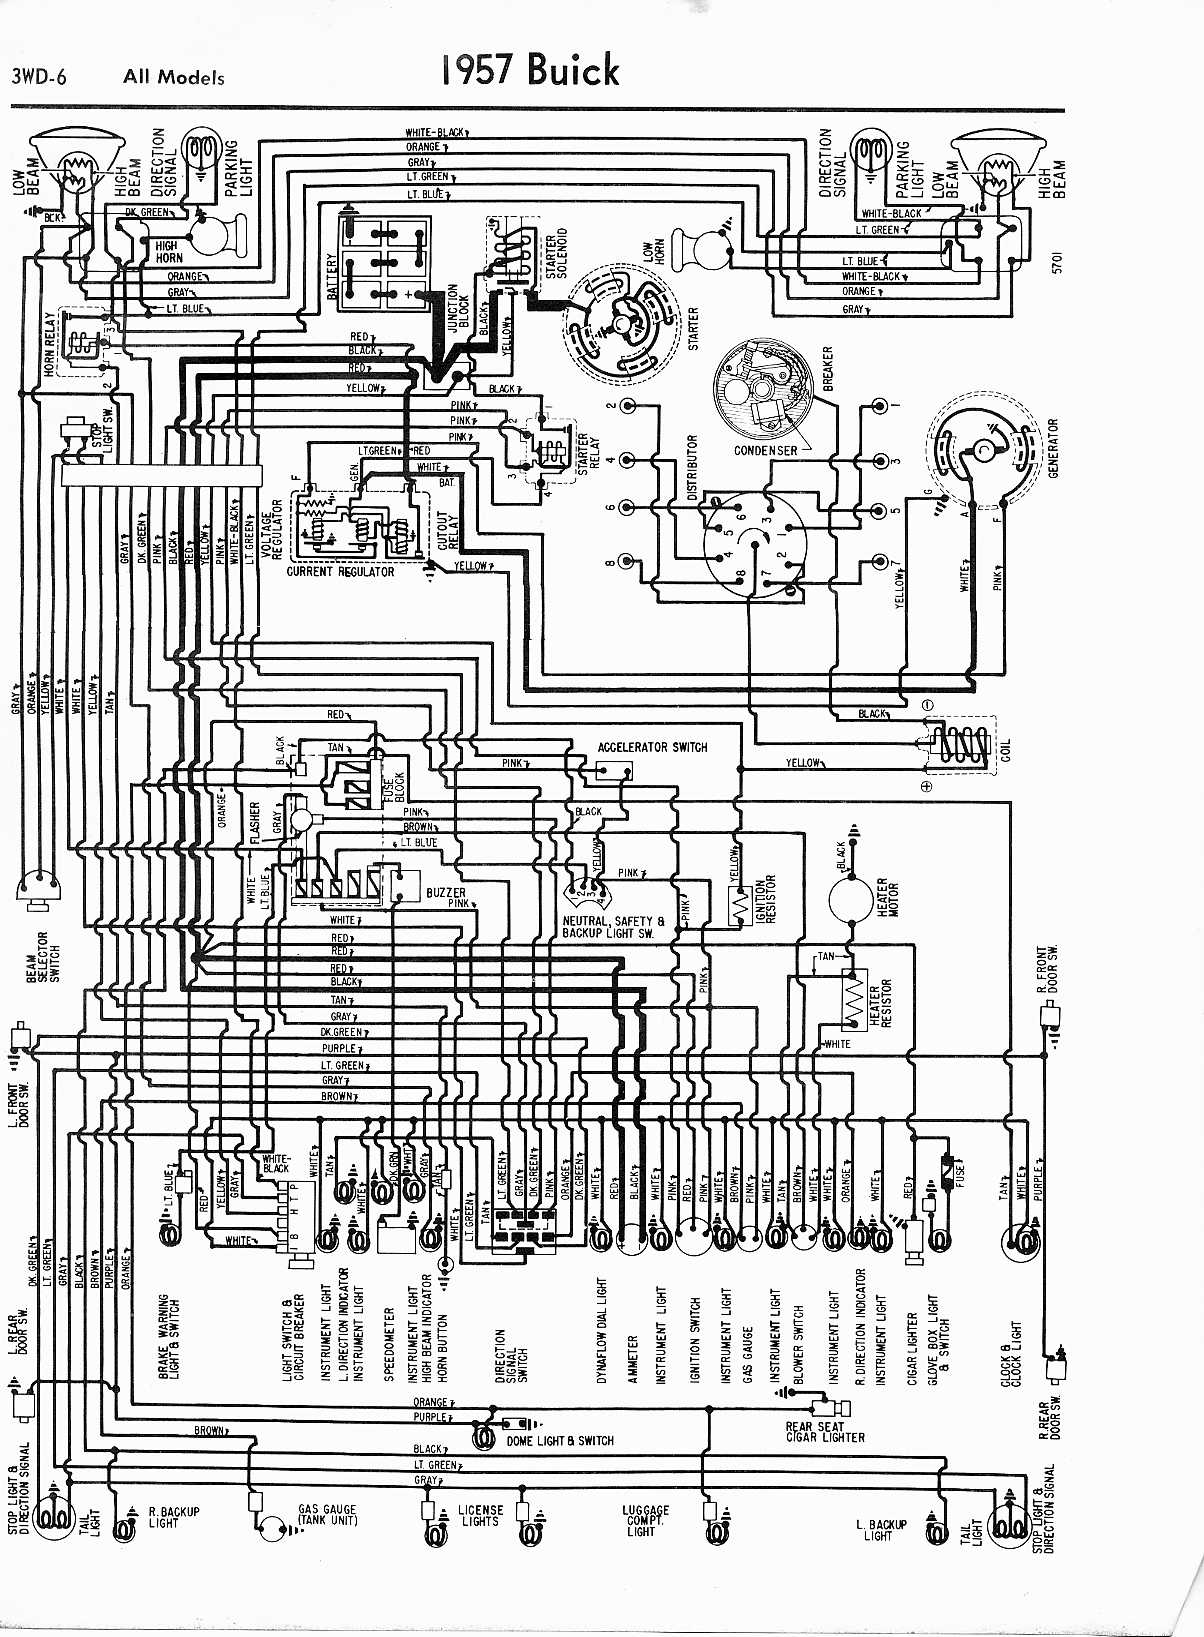 Buick Wiring Diagrams 1957 1965 1964 Vw Alternator All Models